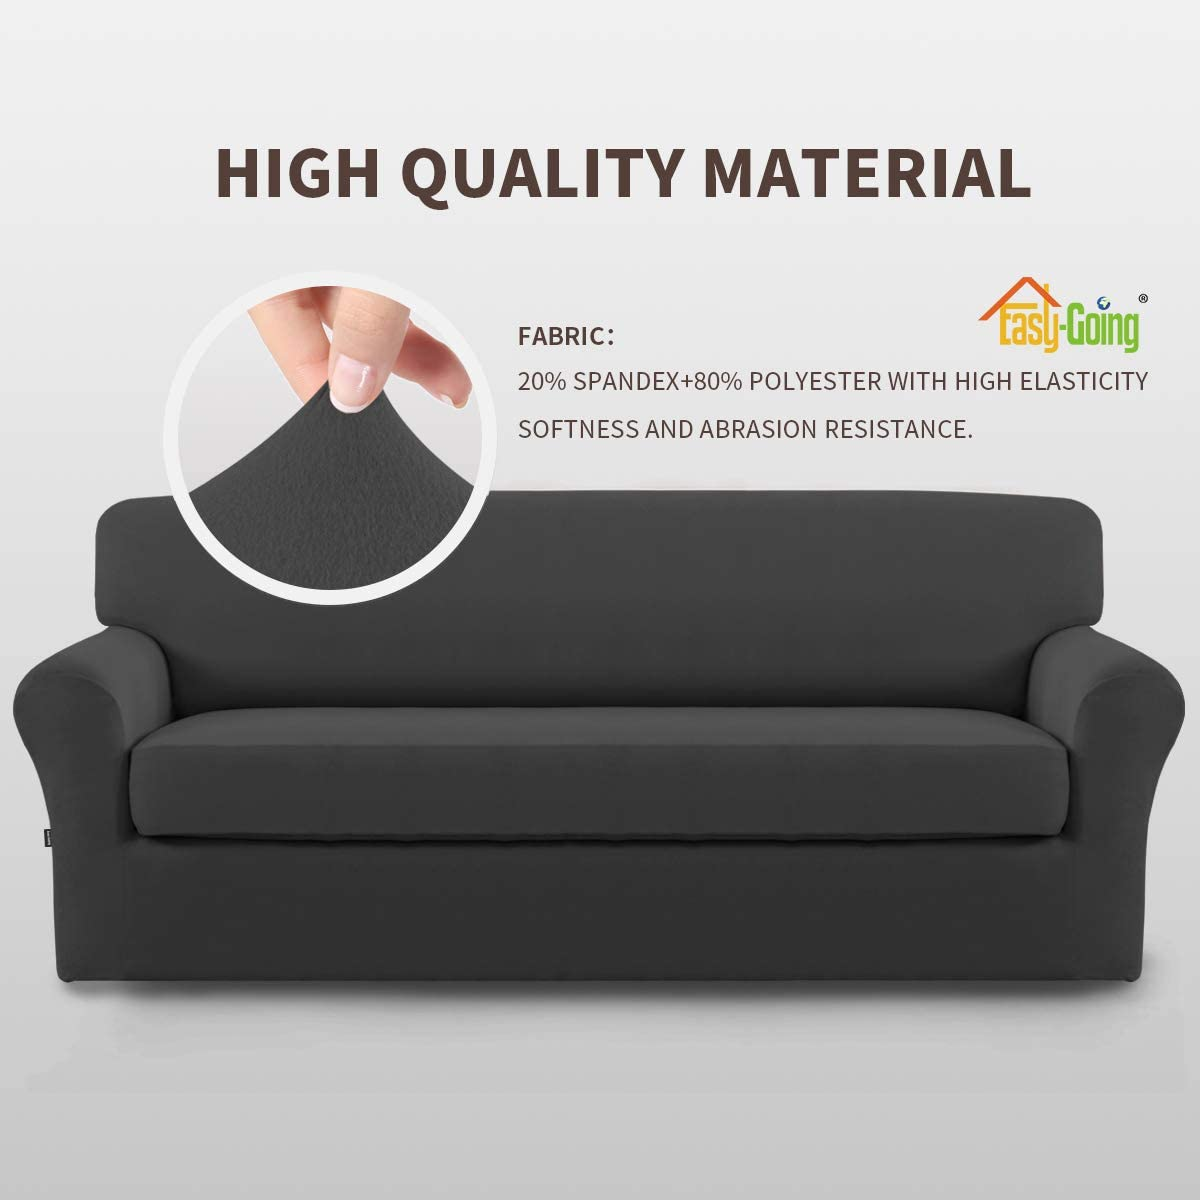 Easy-Going 2 Pieces Microfiber Stretch Sofa Slipcover – Spandex Soft Fitted Sofa Couch Cover, Washable Furniture Protector with Elastic Bottom for Kids,Pet (Sofa,Gray): Home & Kitchen